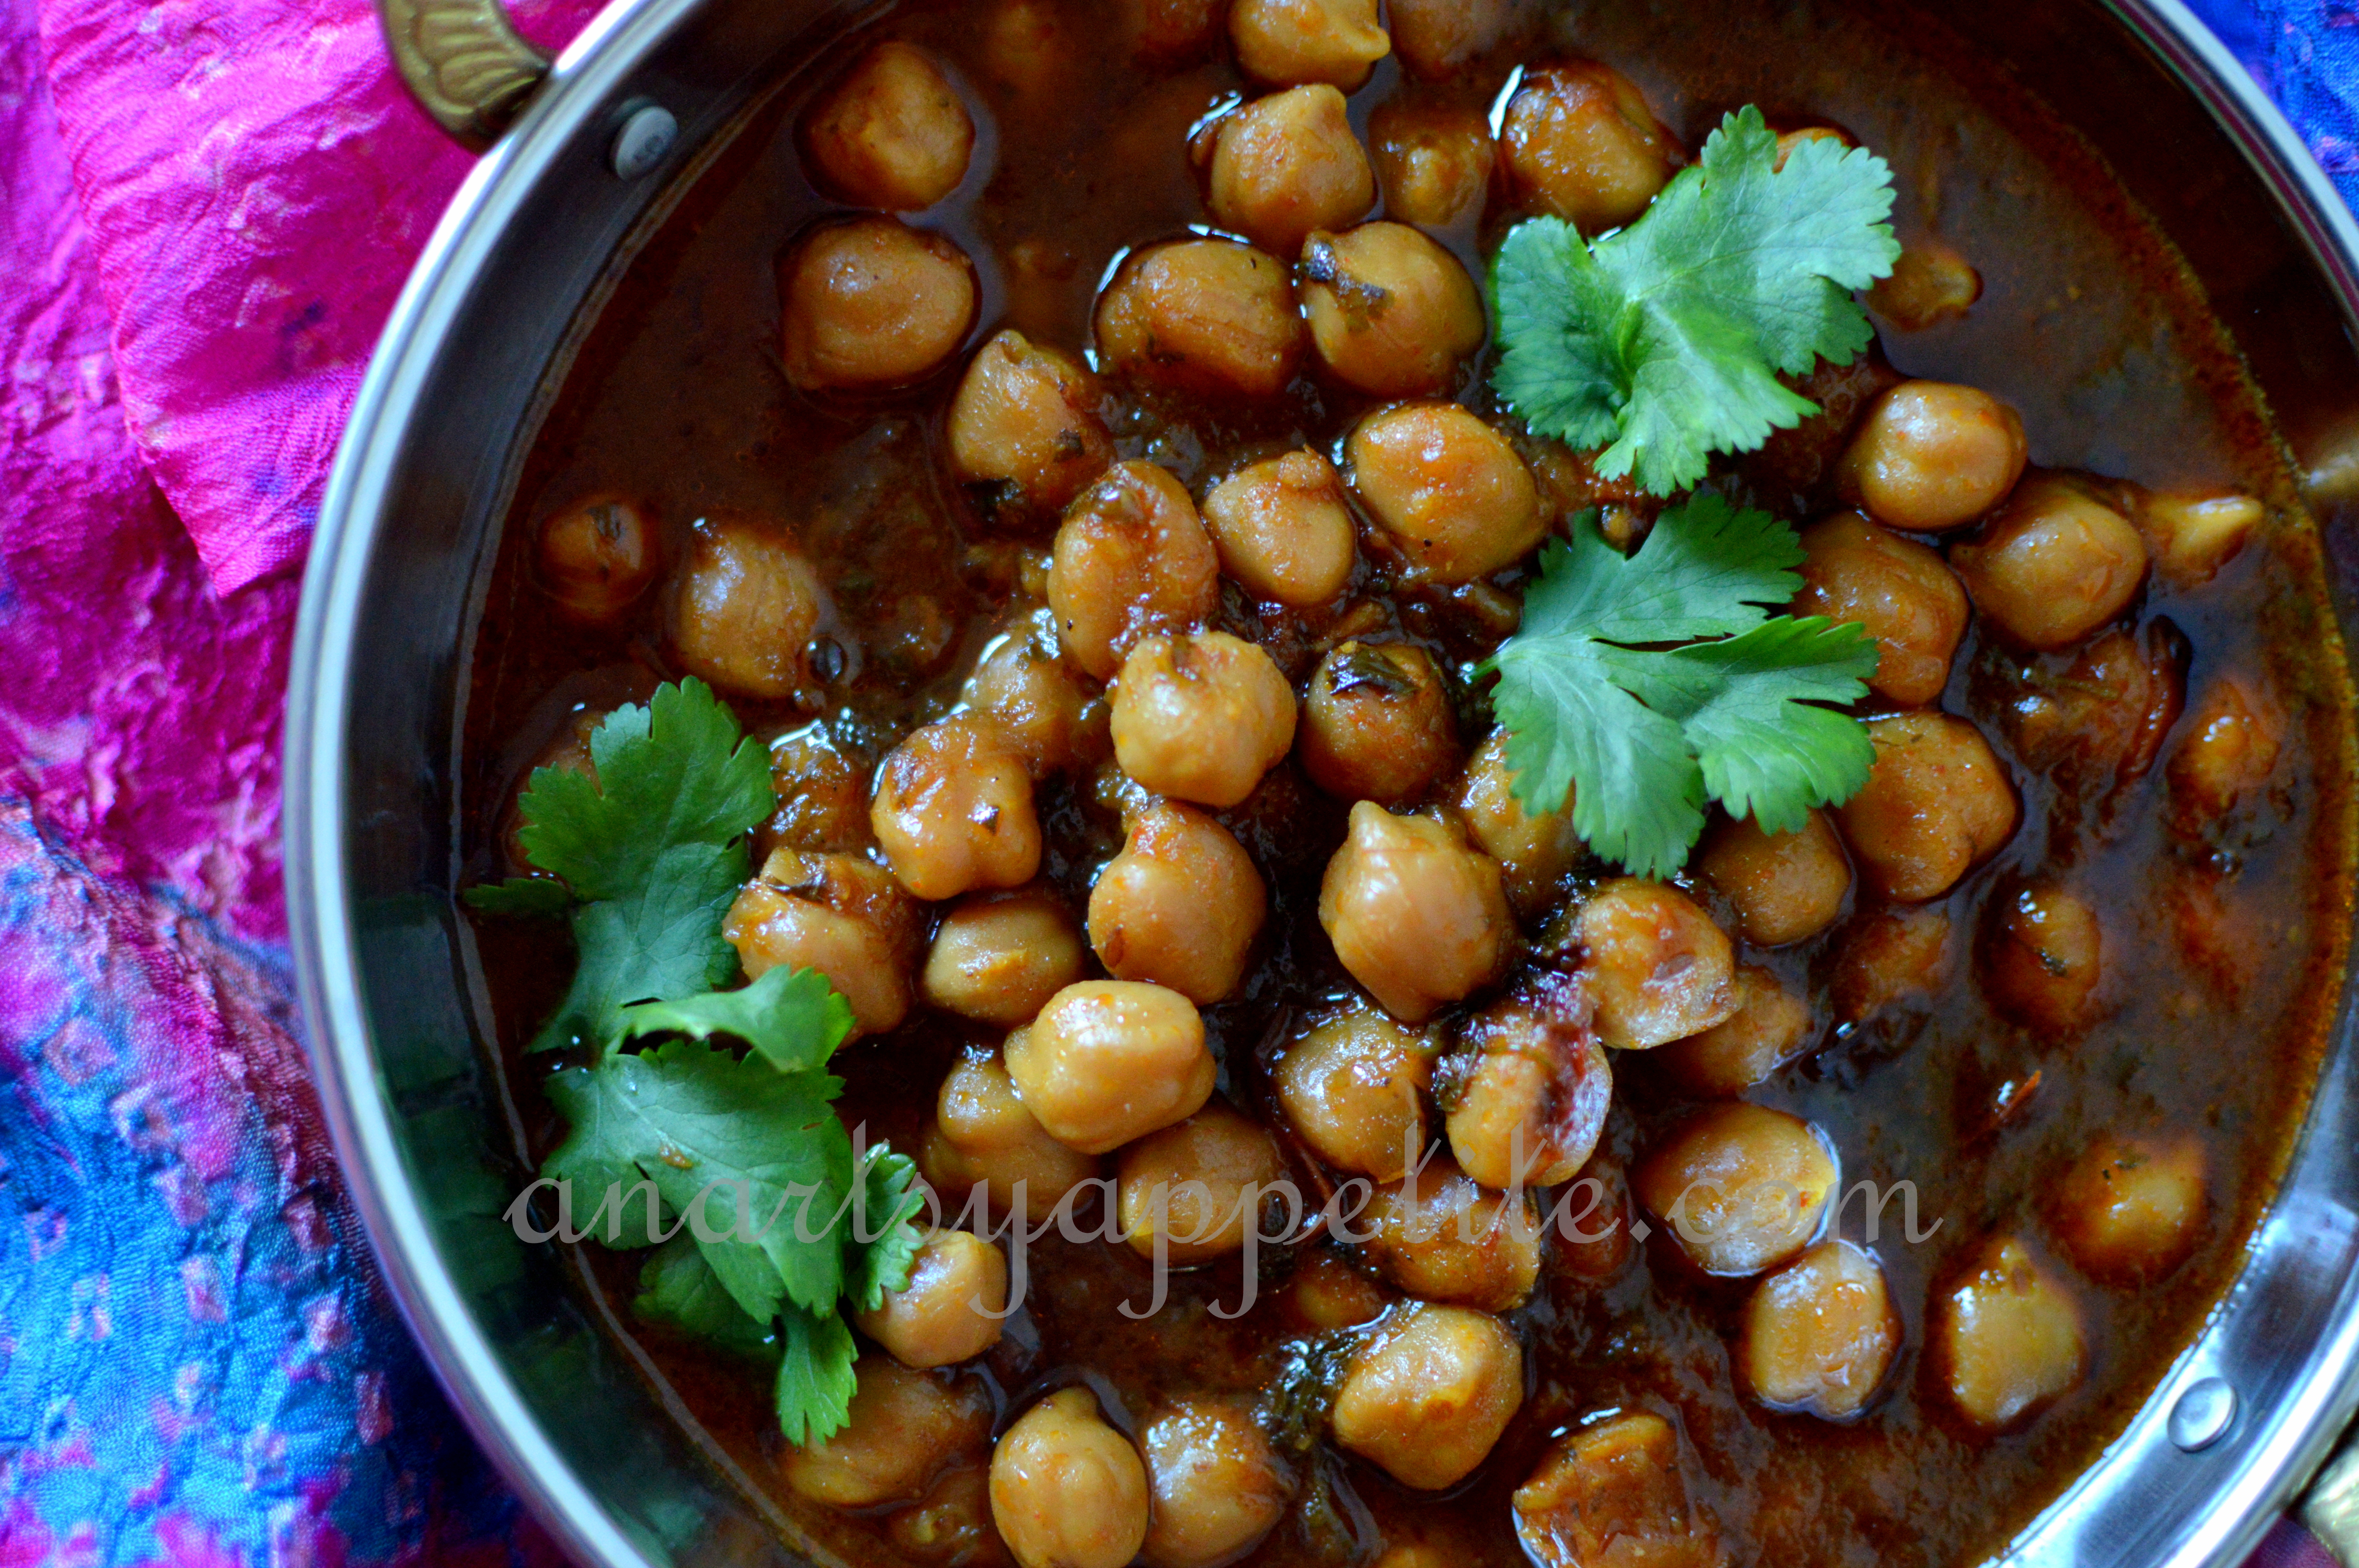 Instant pot punjabi chole recipe savory indian chickpeas how to chole masala or chana masala a popular north indian savory dish of spiced garbanzo beans or chickpeas is the answer to everything be it weekday dinner forumfinder Image collections